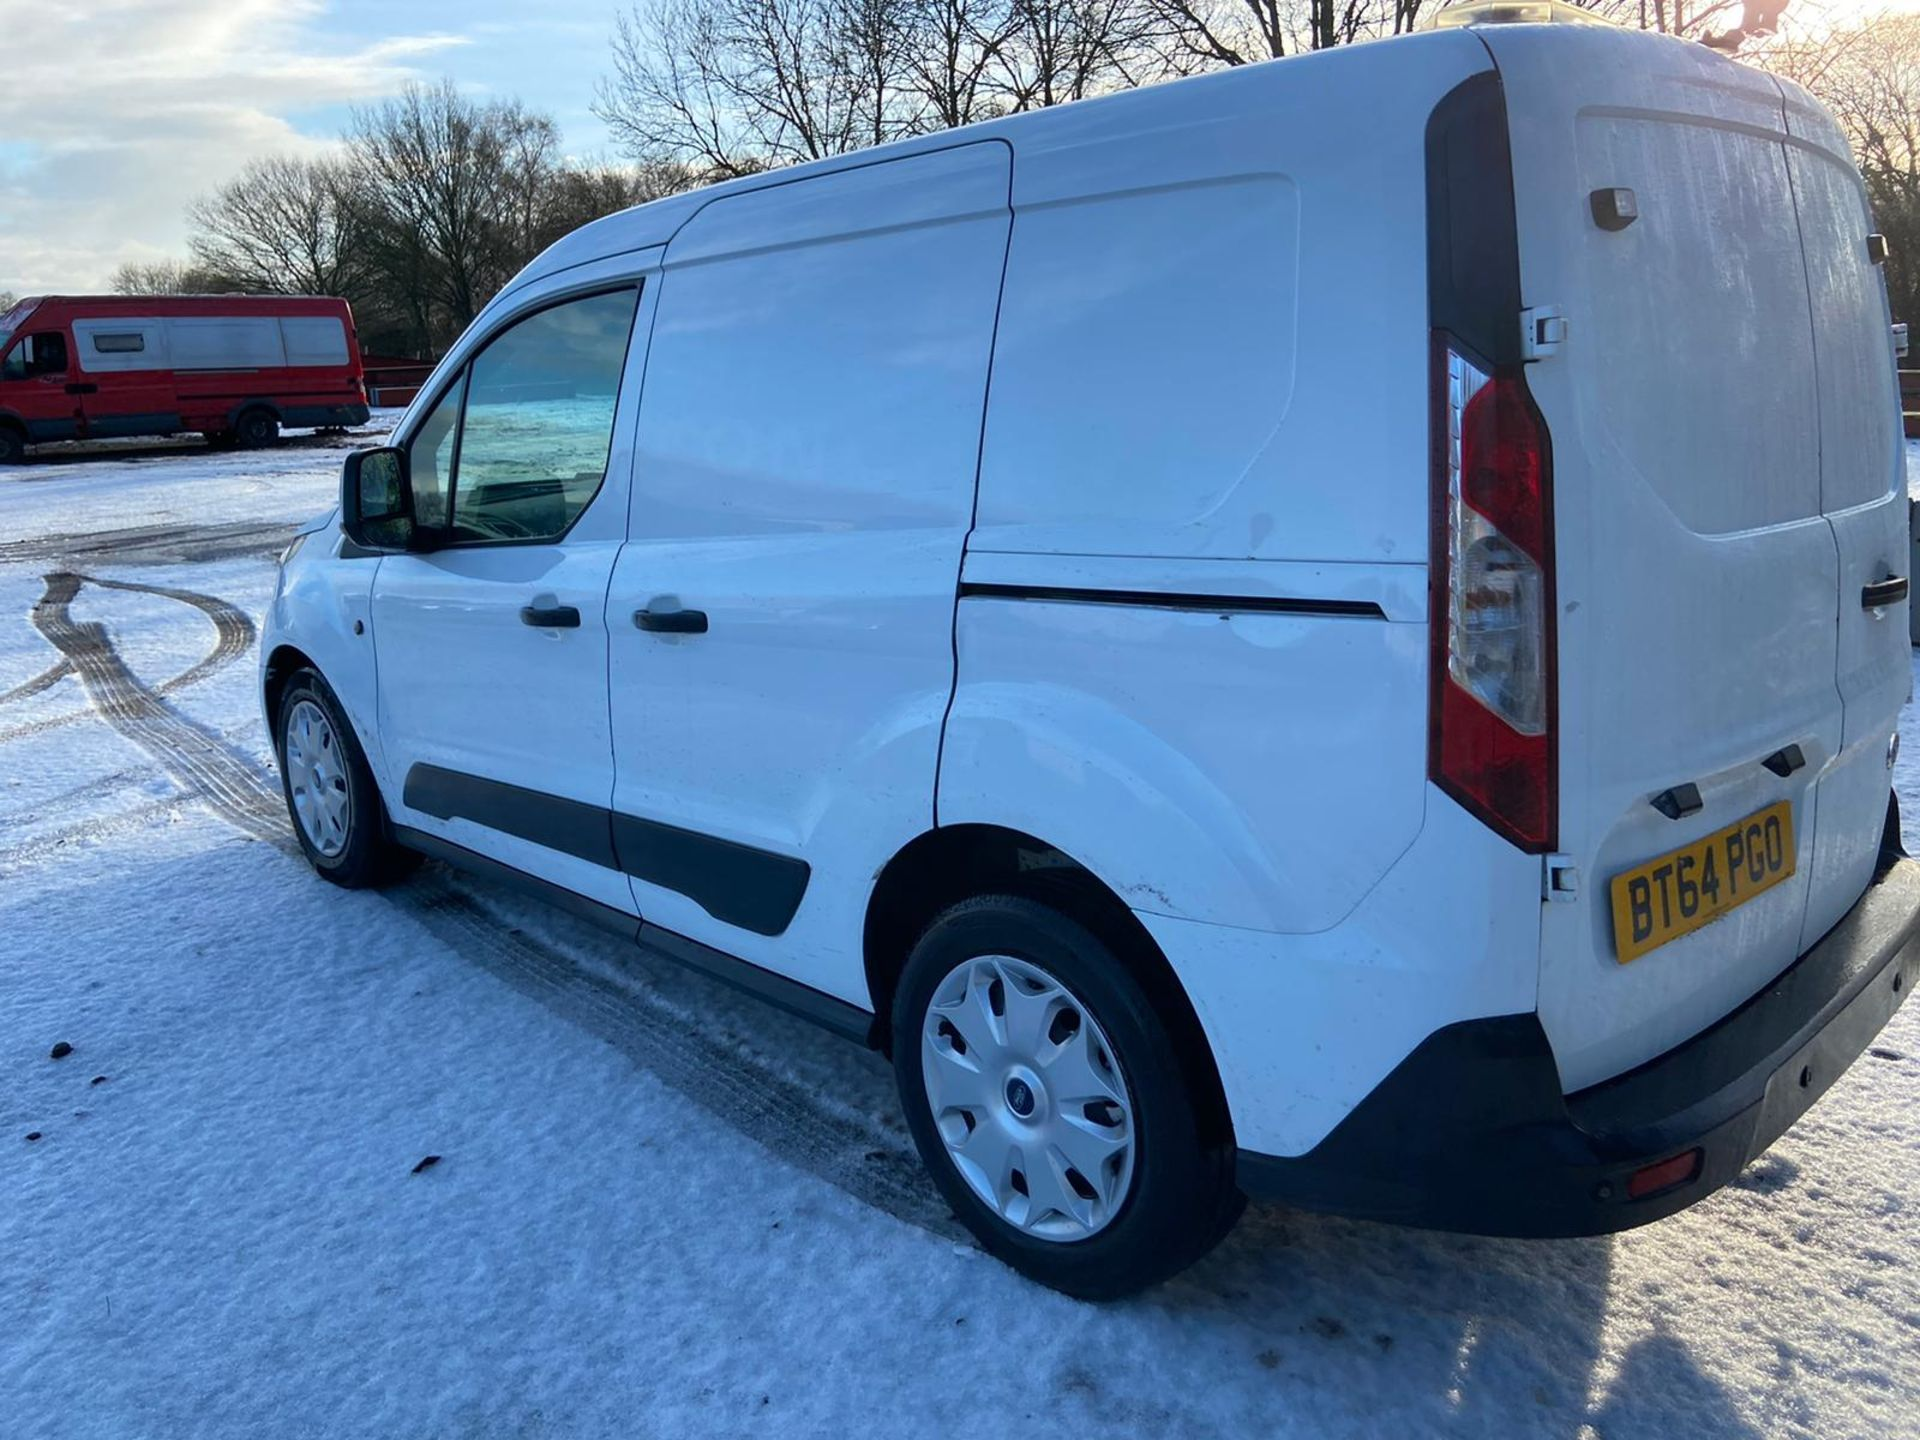 2015/64 REG FORD TRANSIT CONNECT 200 ECONETIC 1.6 DIESEL WHITE PANEL VAN, SHOWING 0 FORMER KEEPERS - Image 4 of 10